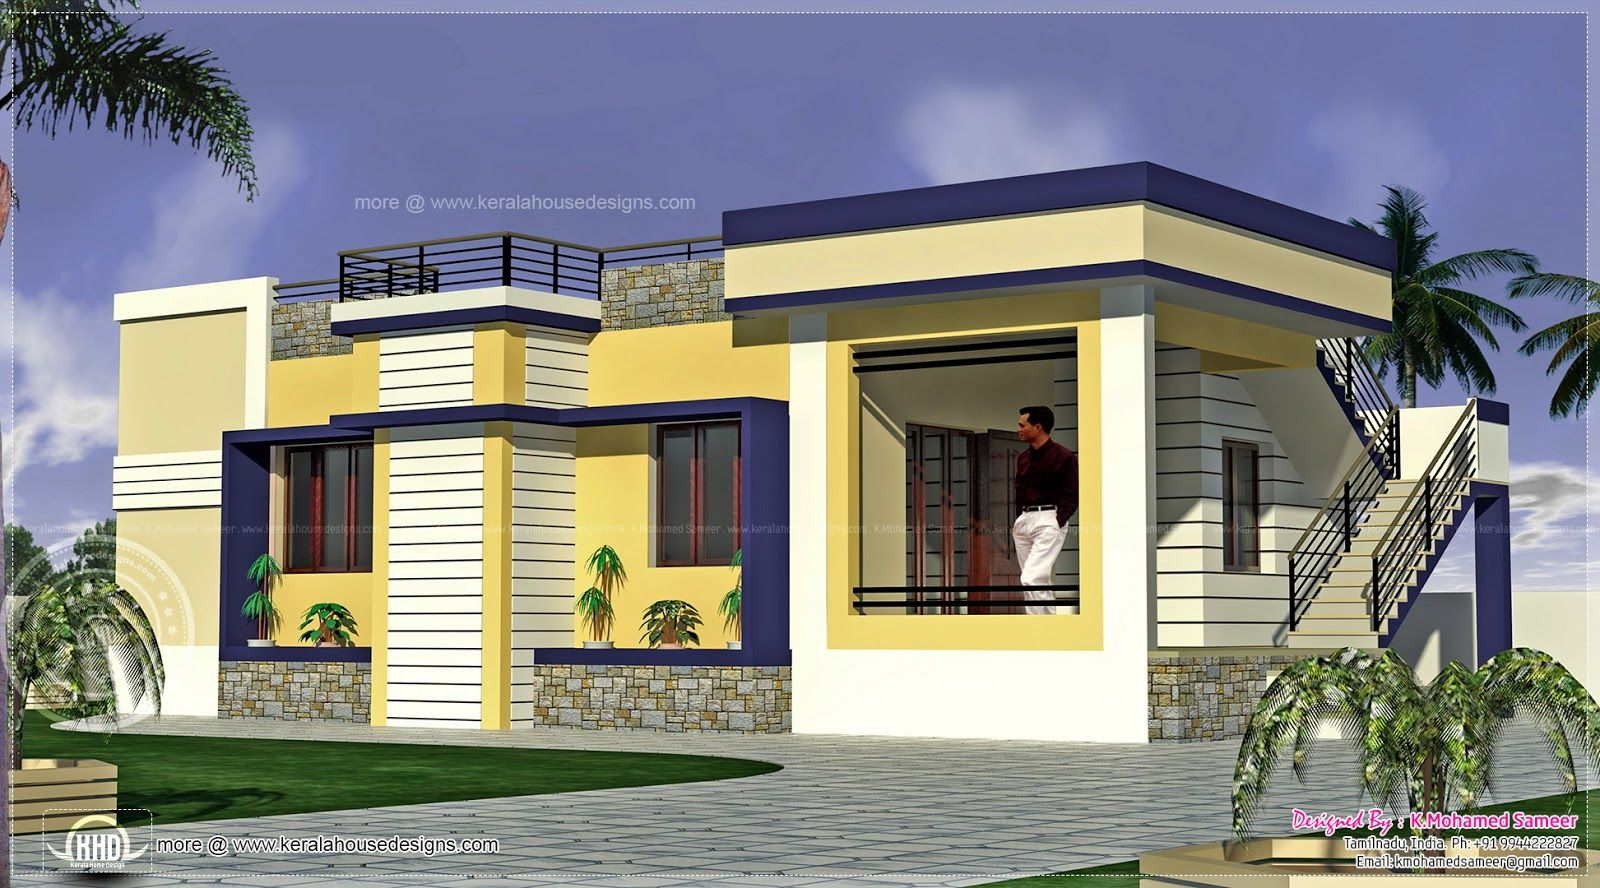 Tamil nadu house plans 1000 sq ft l for House plans for 1200 sq ft in tamilnadu